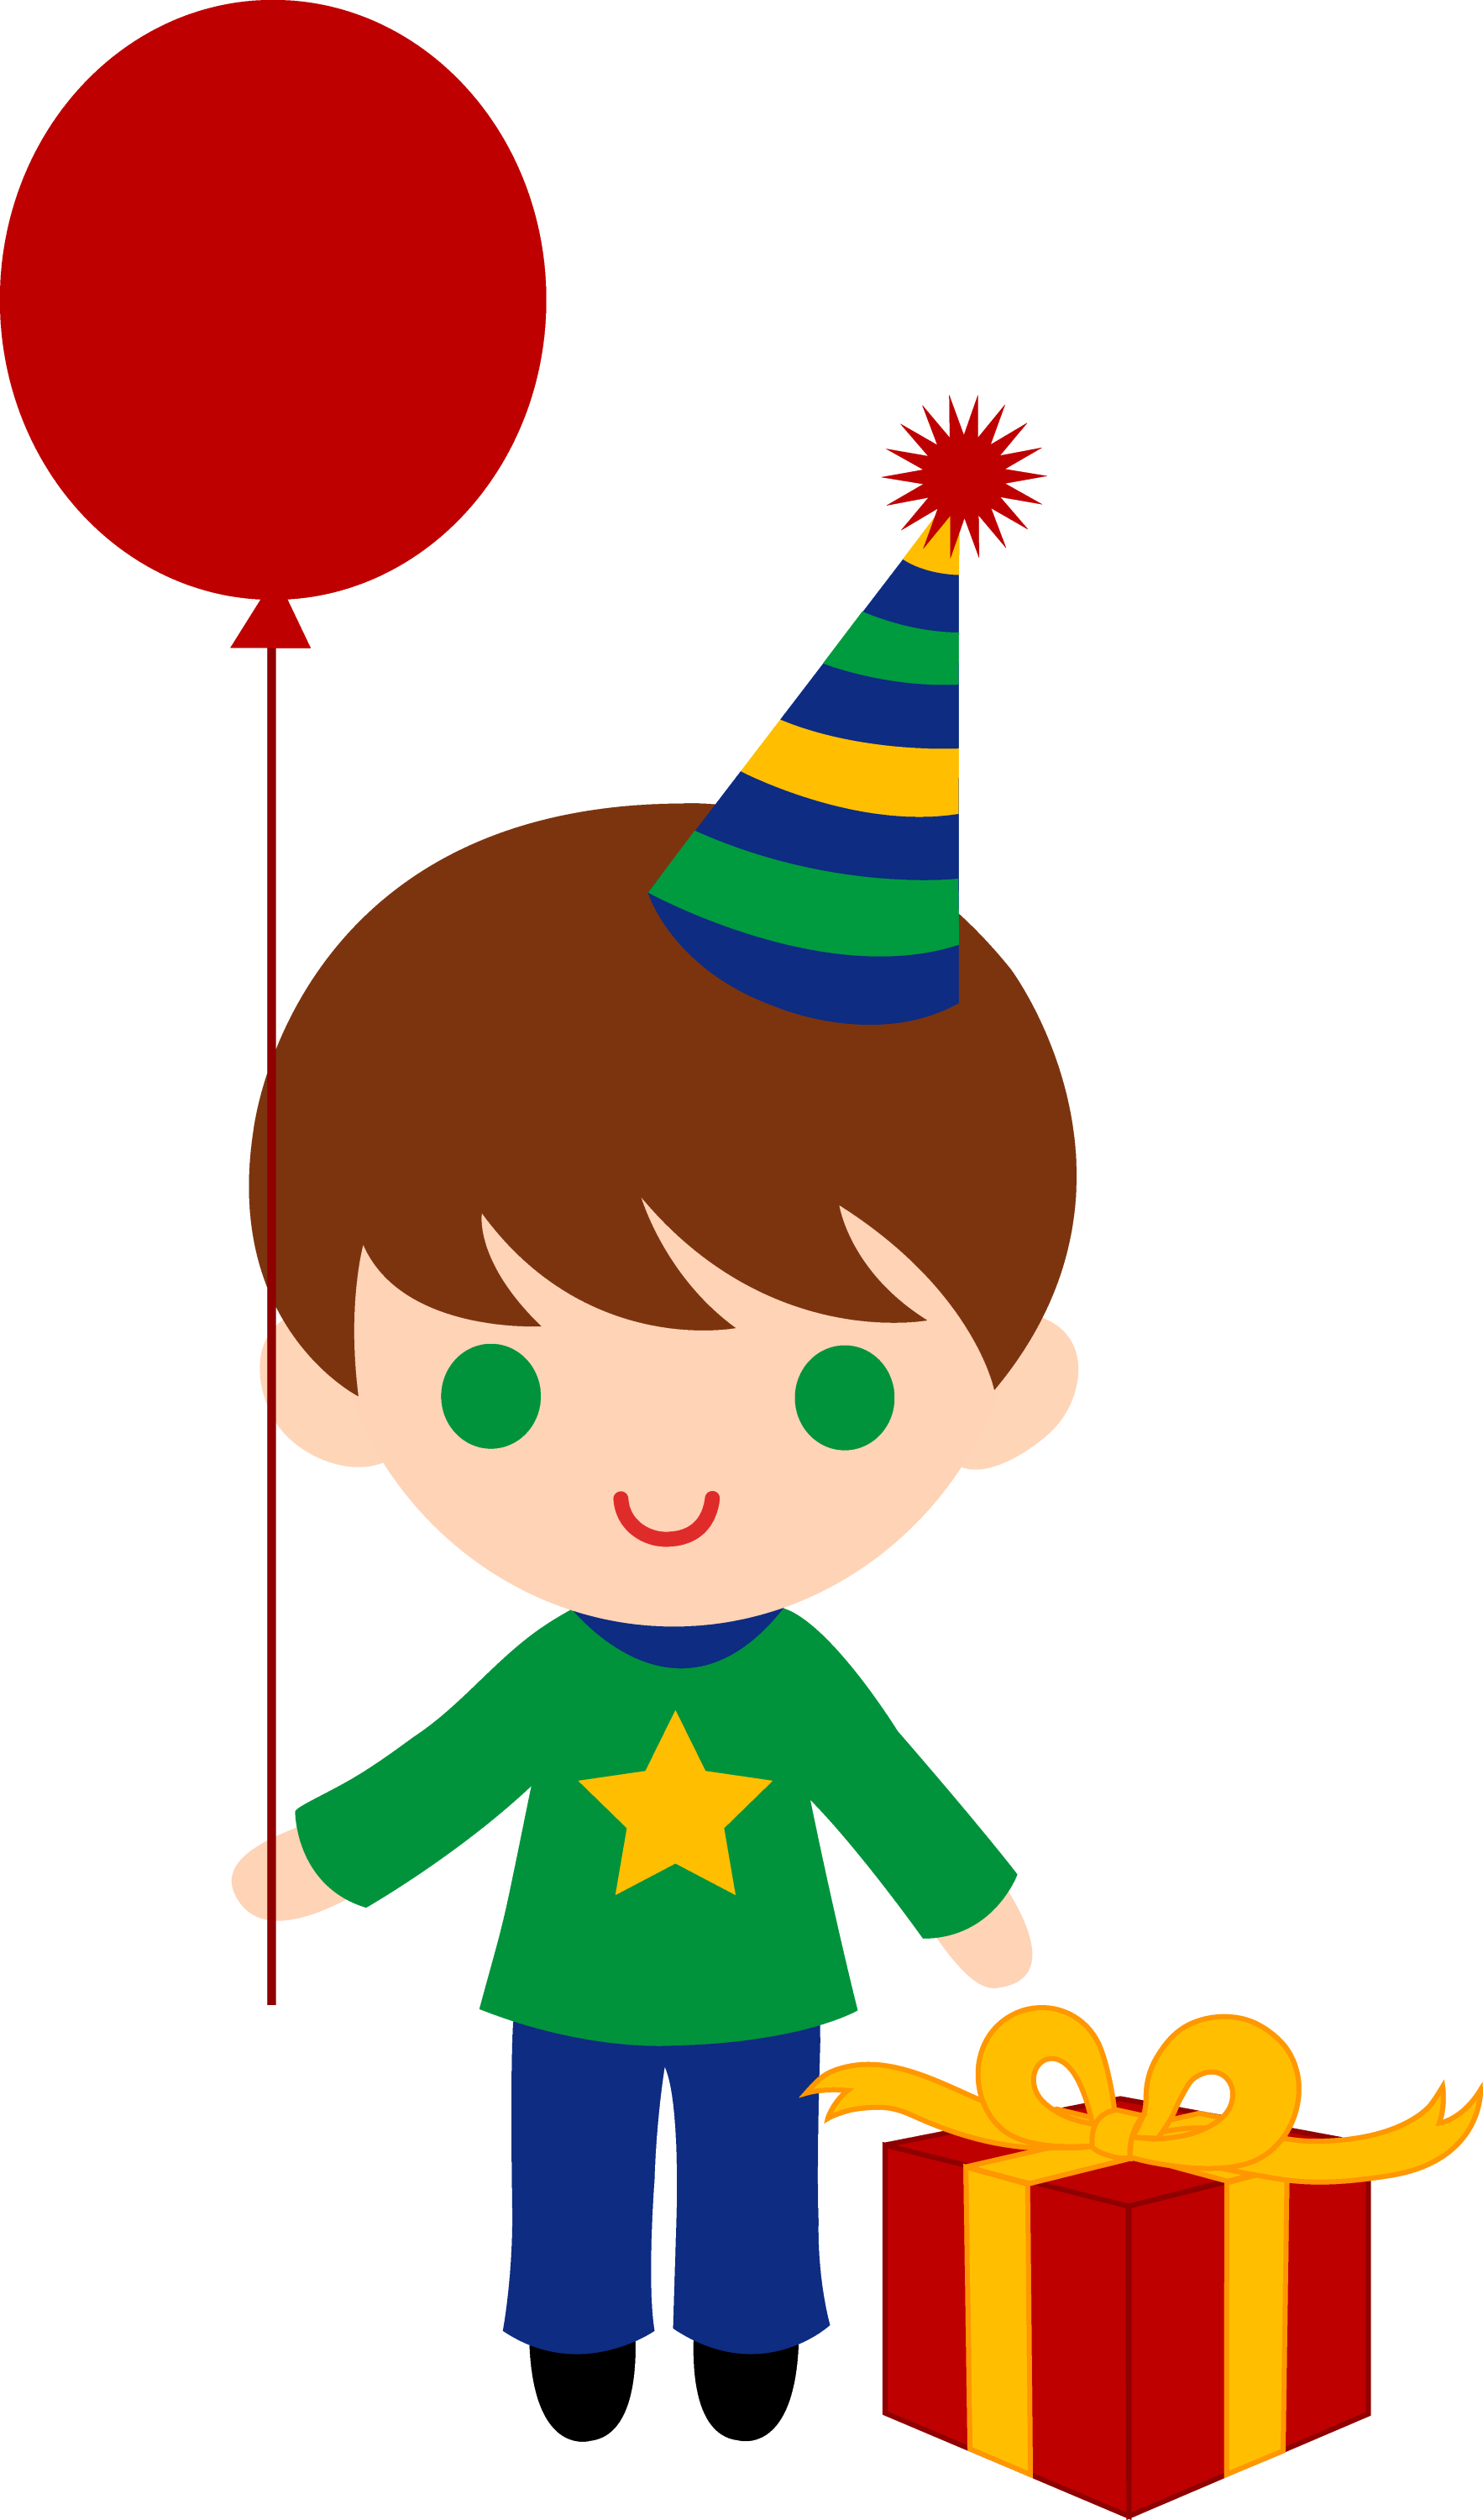 Cute People Clipart Cute Birthday Boy Clipart